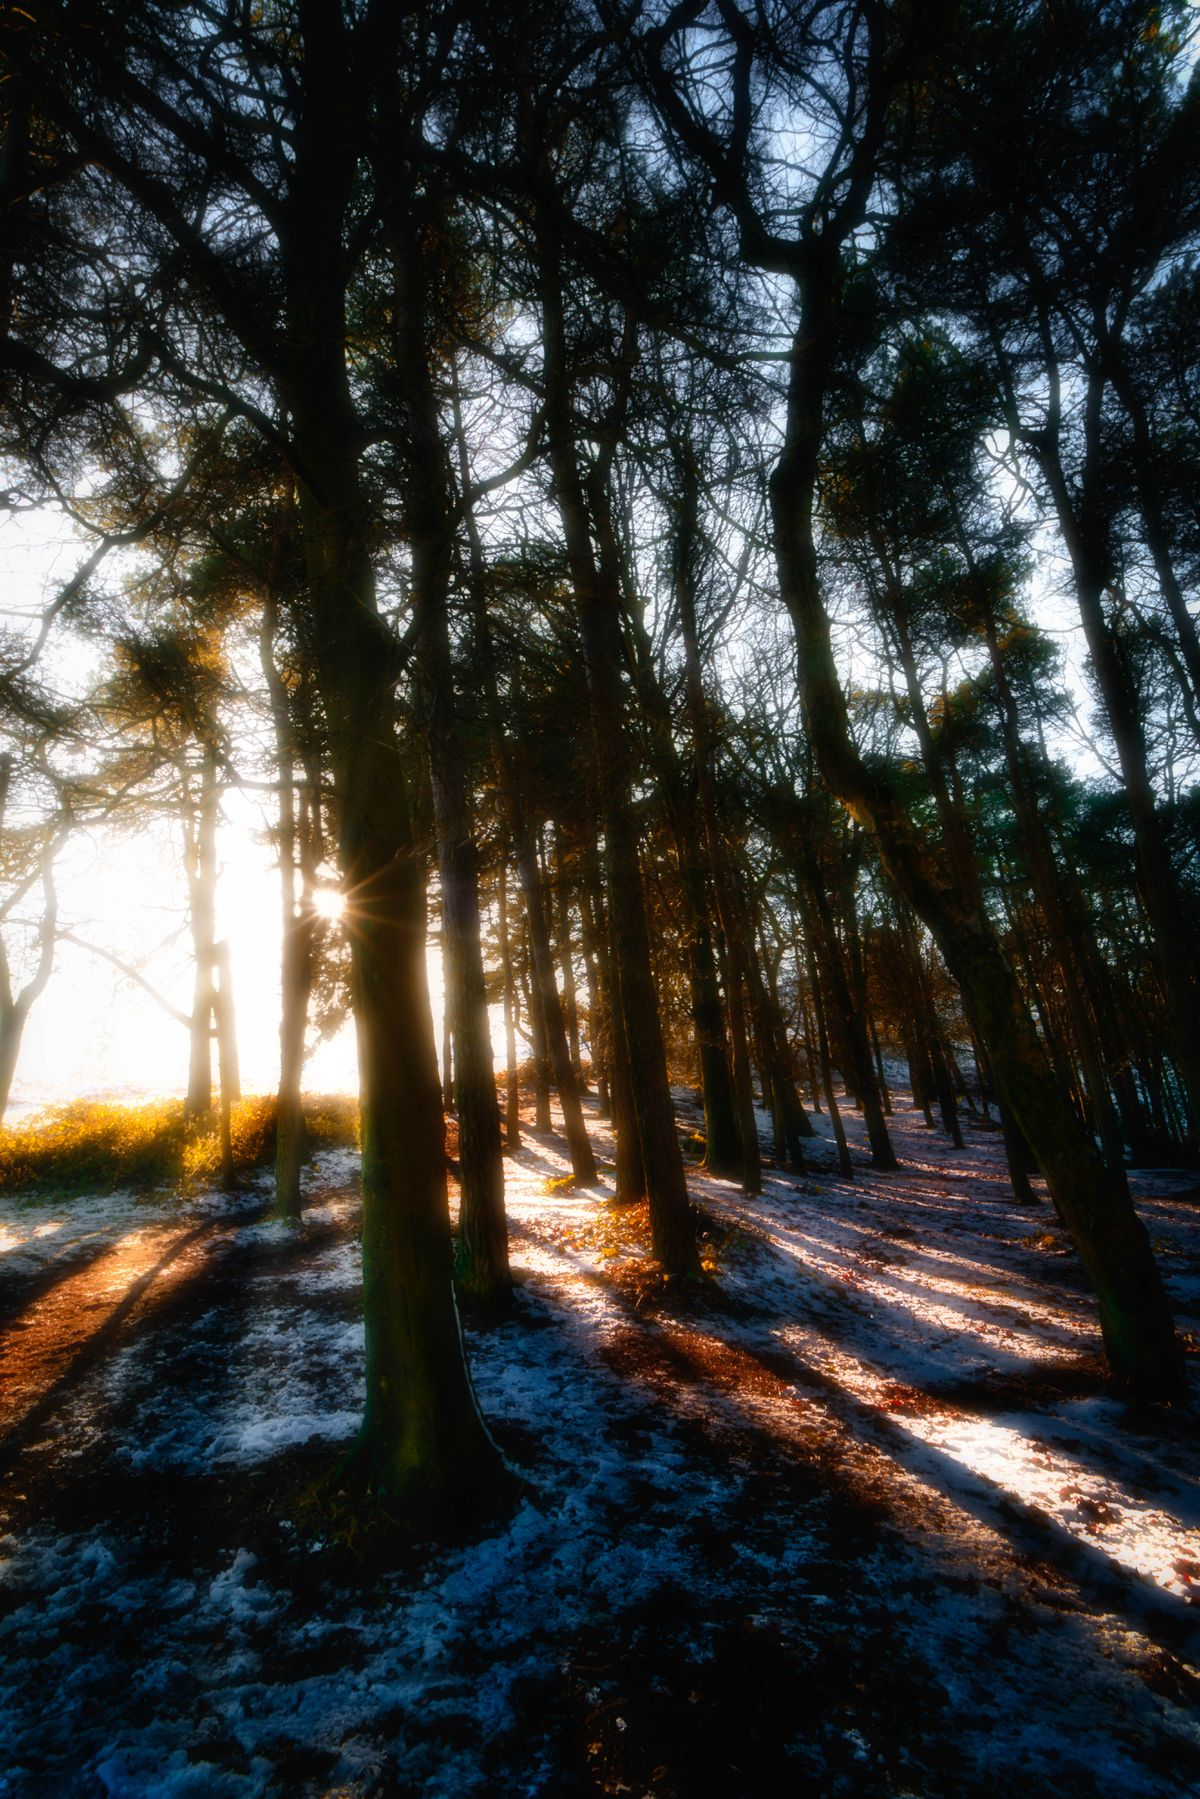 Wintry views from The Wrekin. Pic: Aaron Collyer (Shutter C Photography)